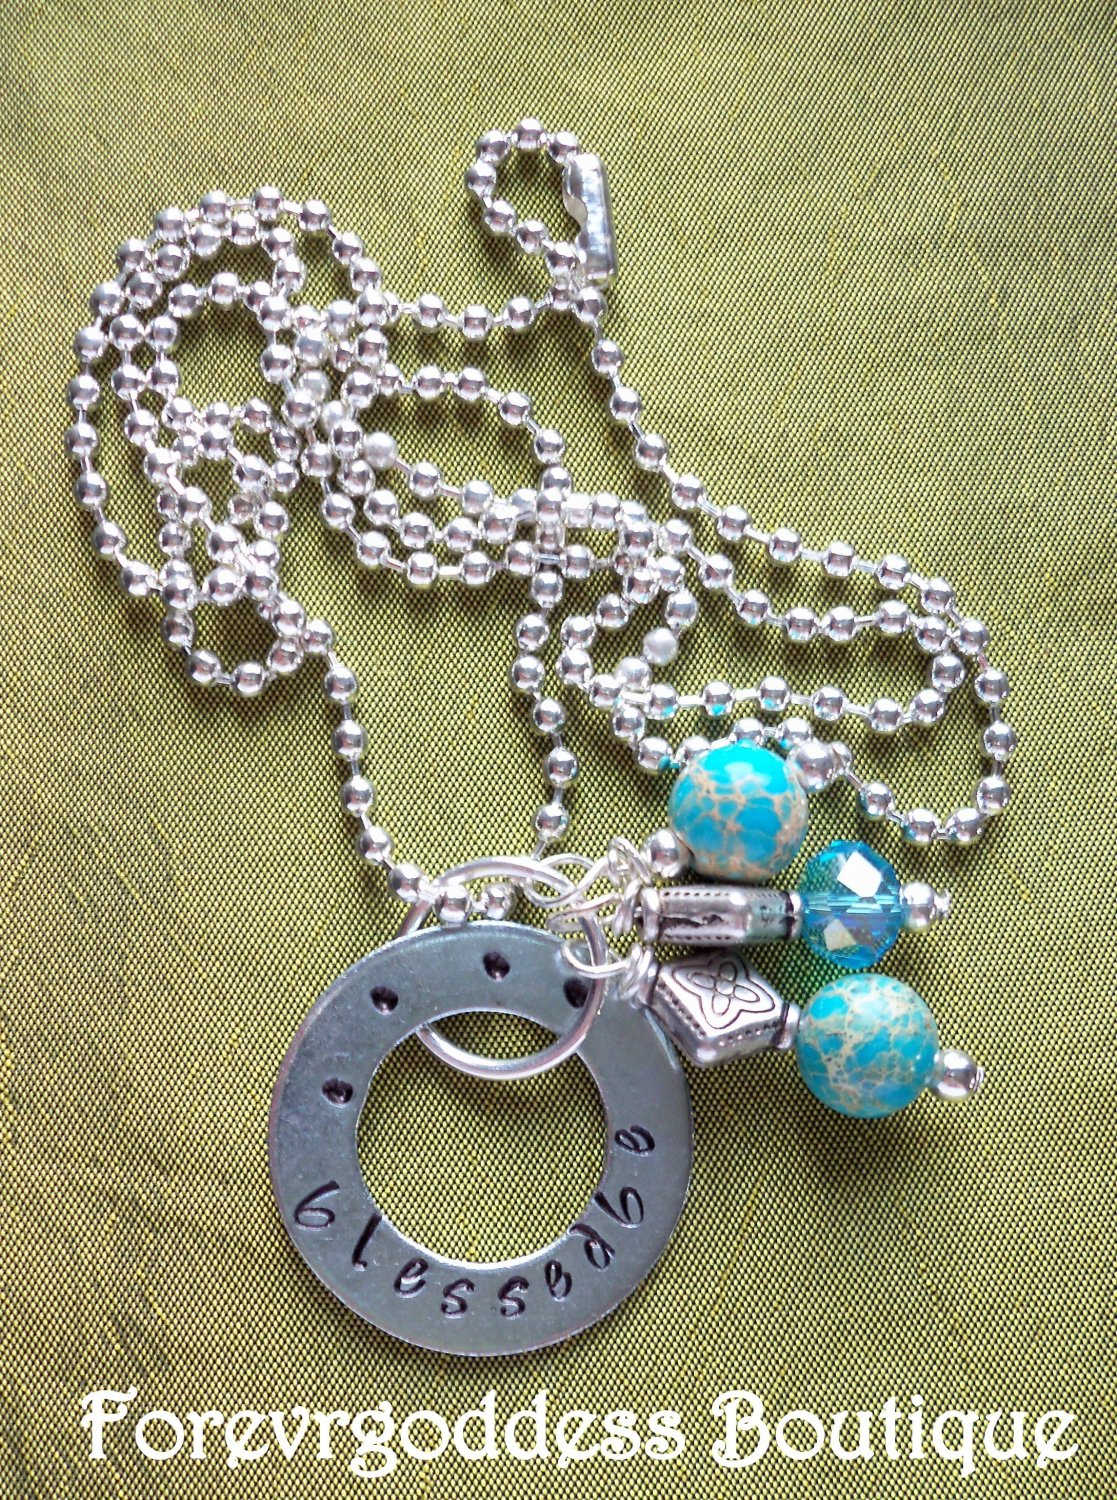 Blessed Be/ blue crazy lace necklace